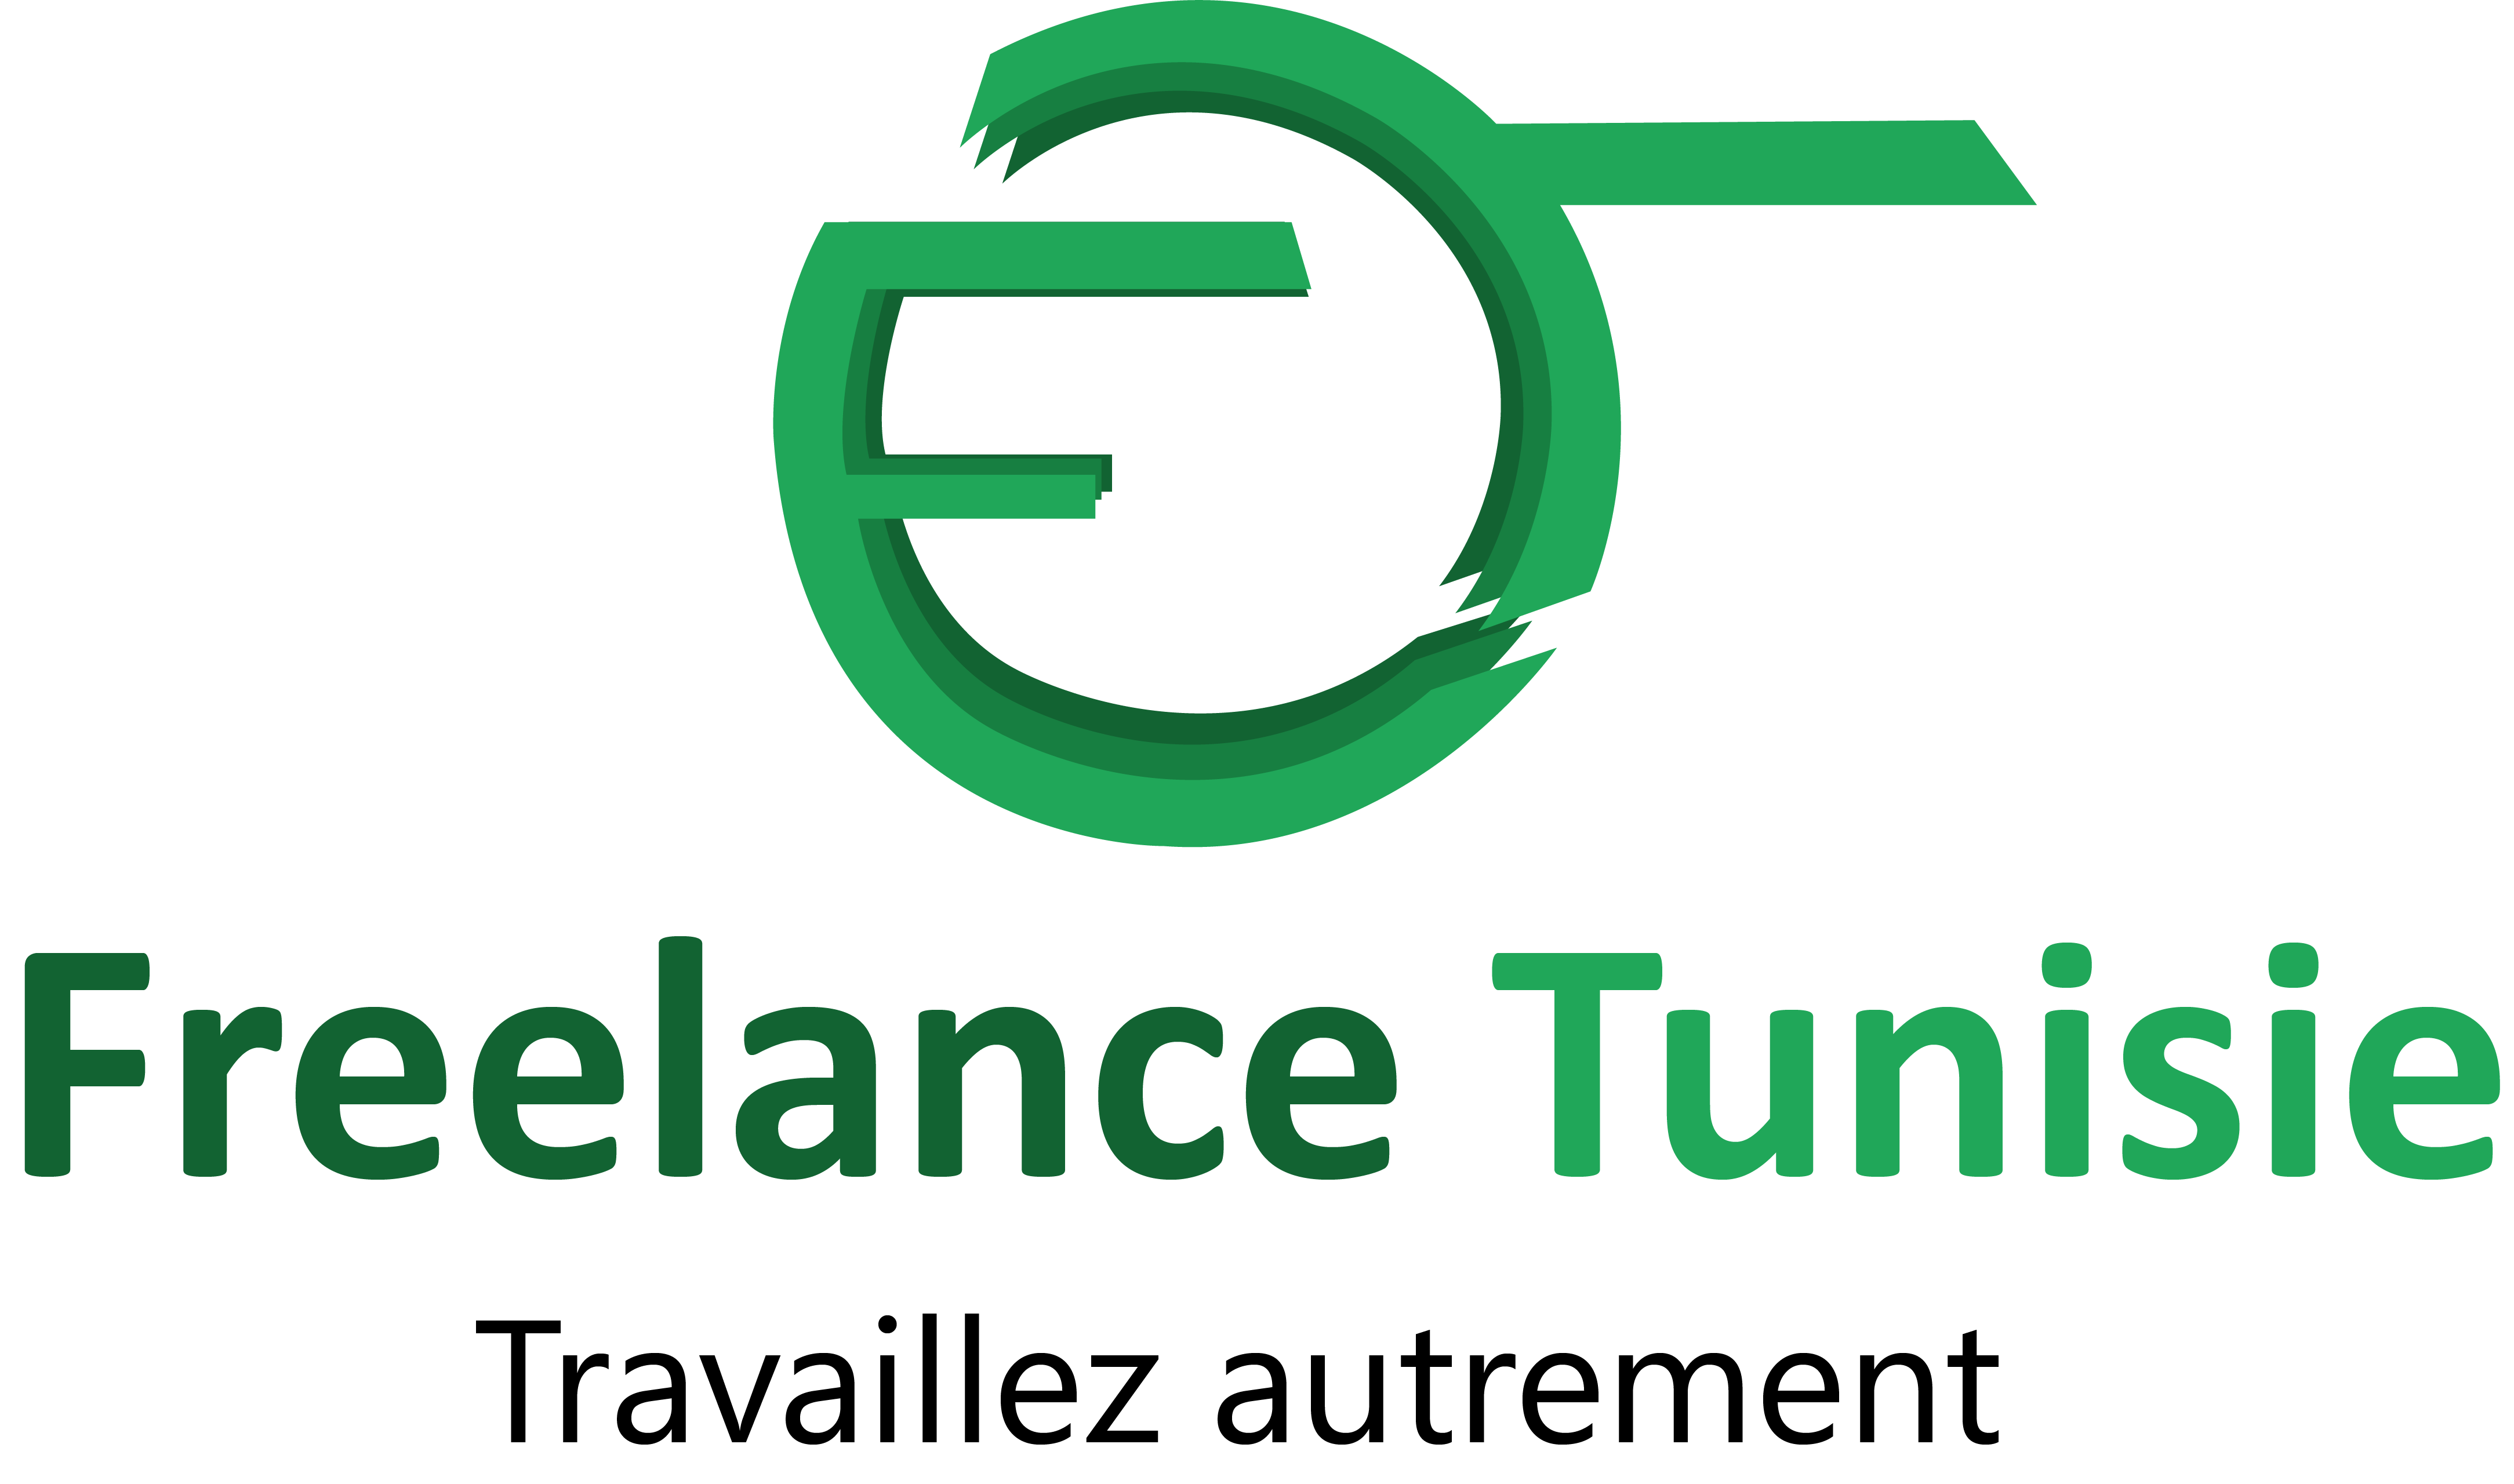 Freelance Tunisie